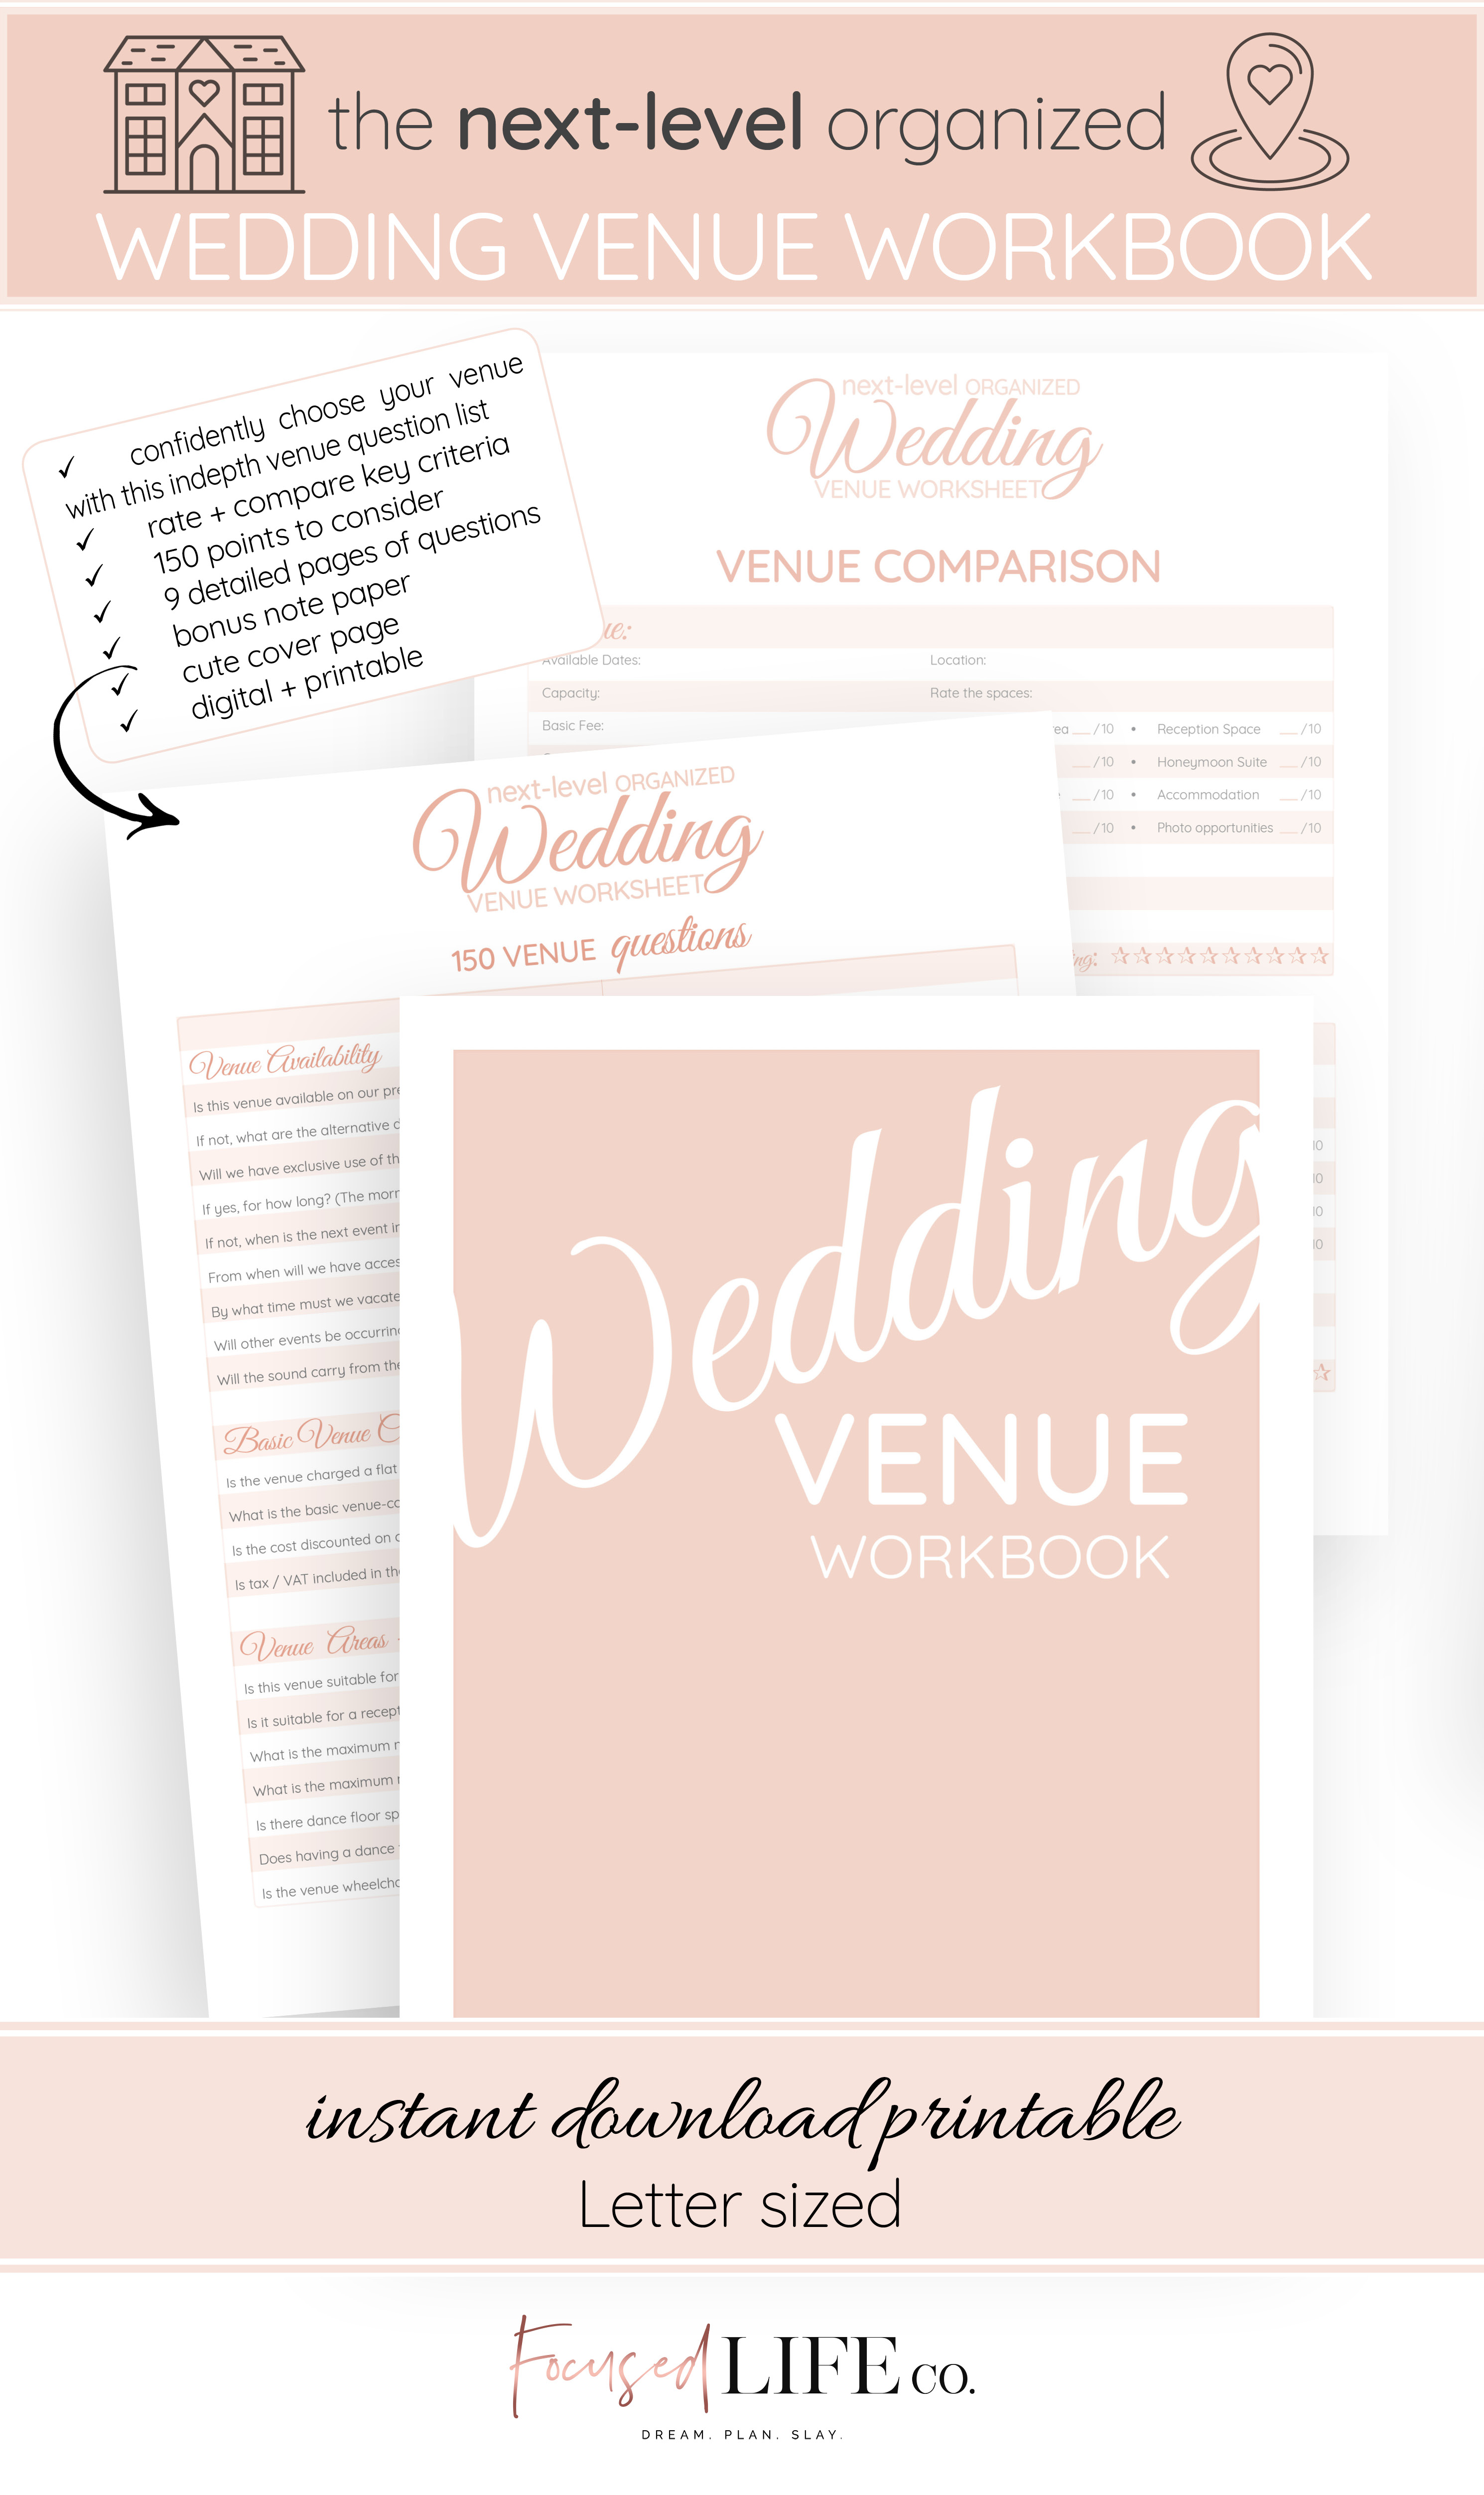 Epic 150 Question Wedding Venue Checklist {Ultimate Detailed